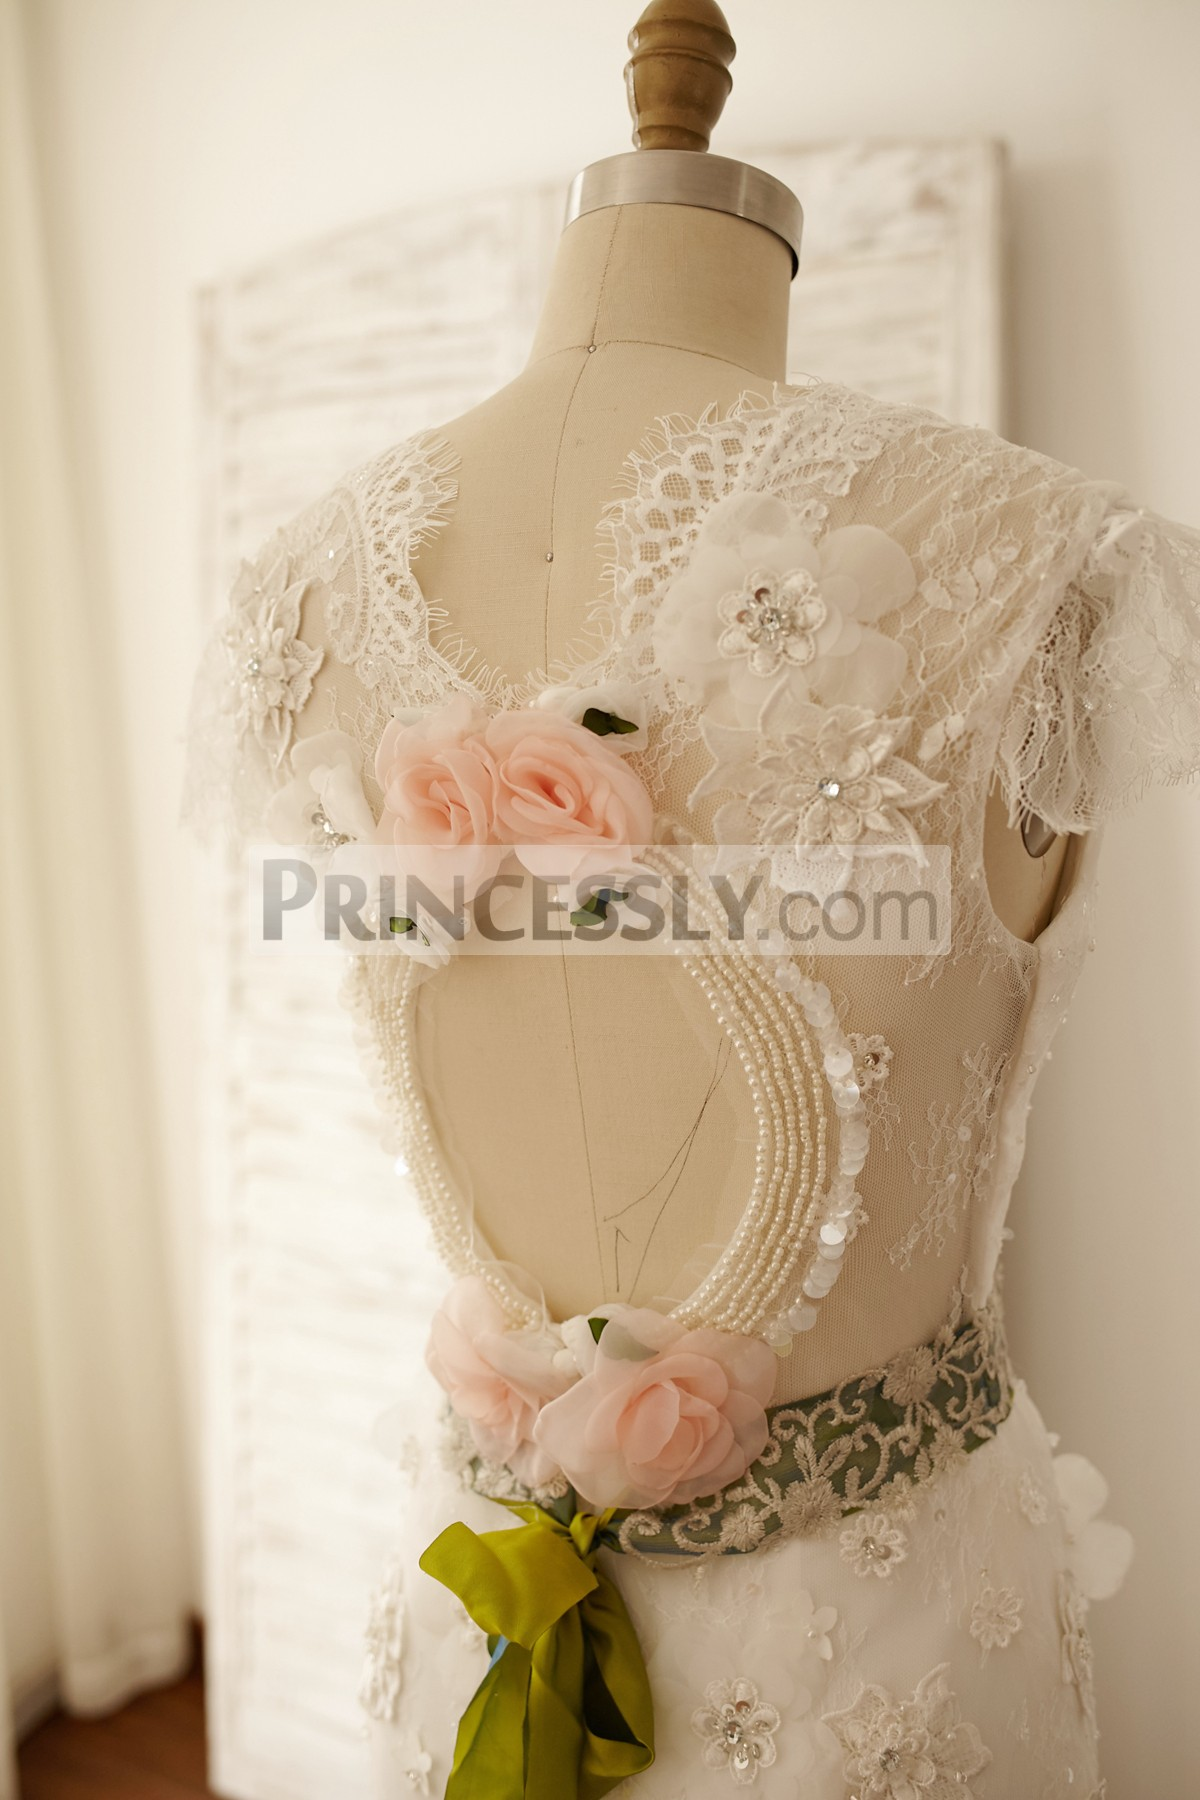 Princessly.com-K1000055-Vintage Keyhole Back Lace Chiffon Cap Sleeves Wedding Dress-31